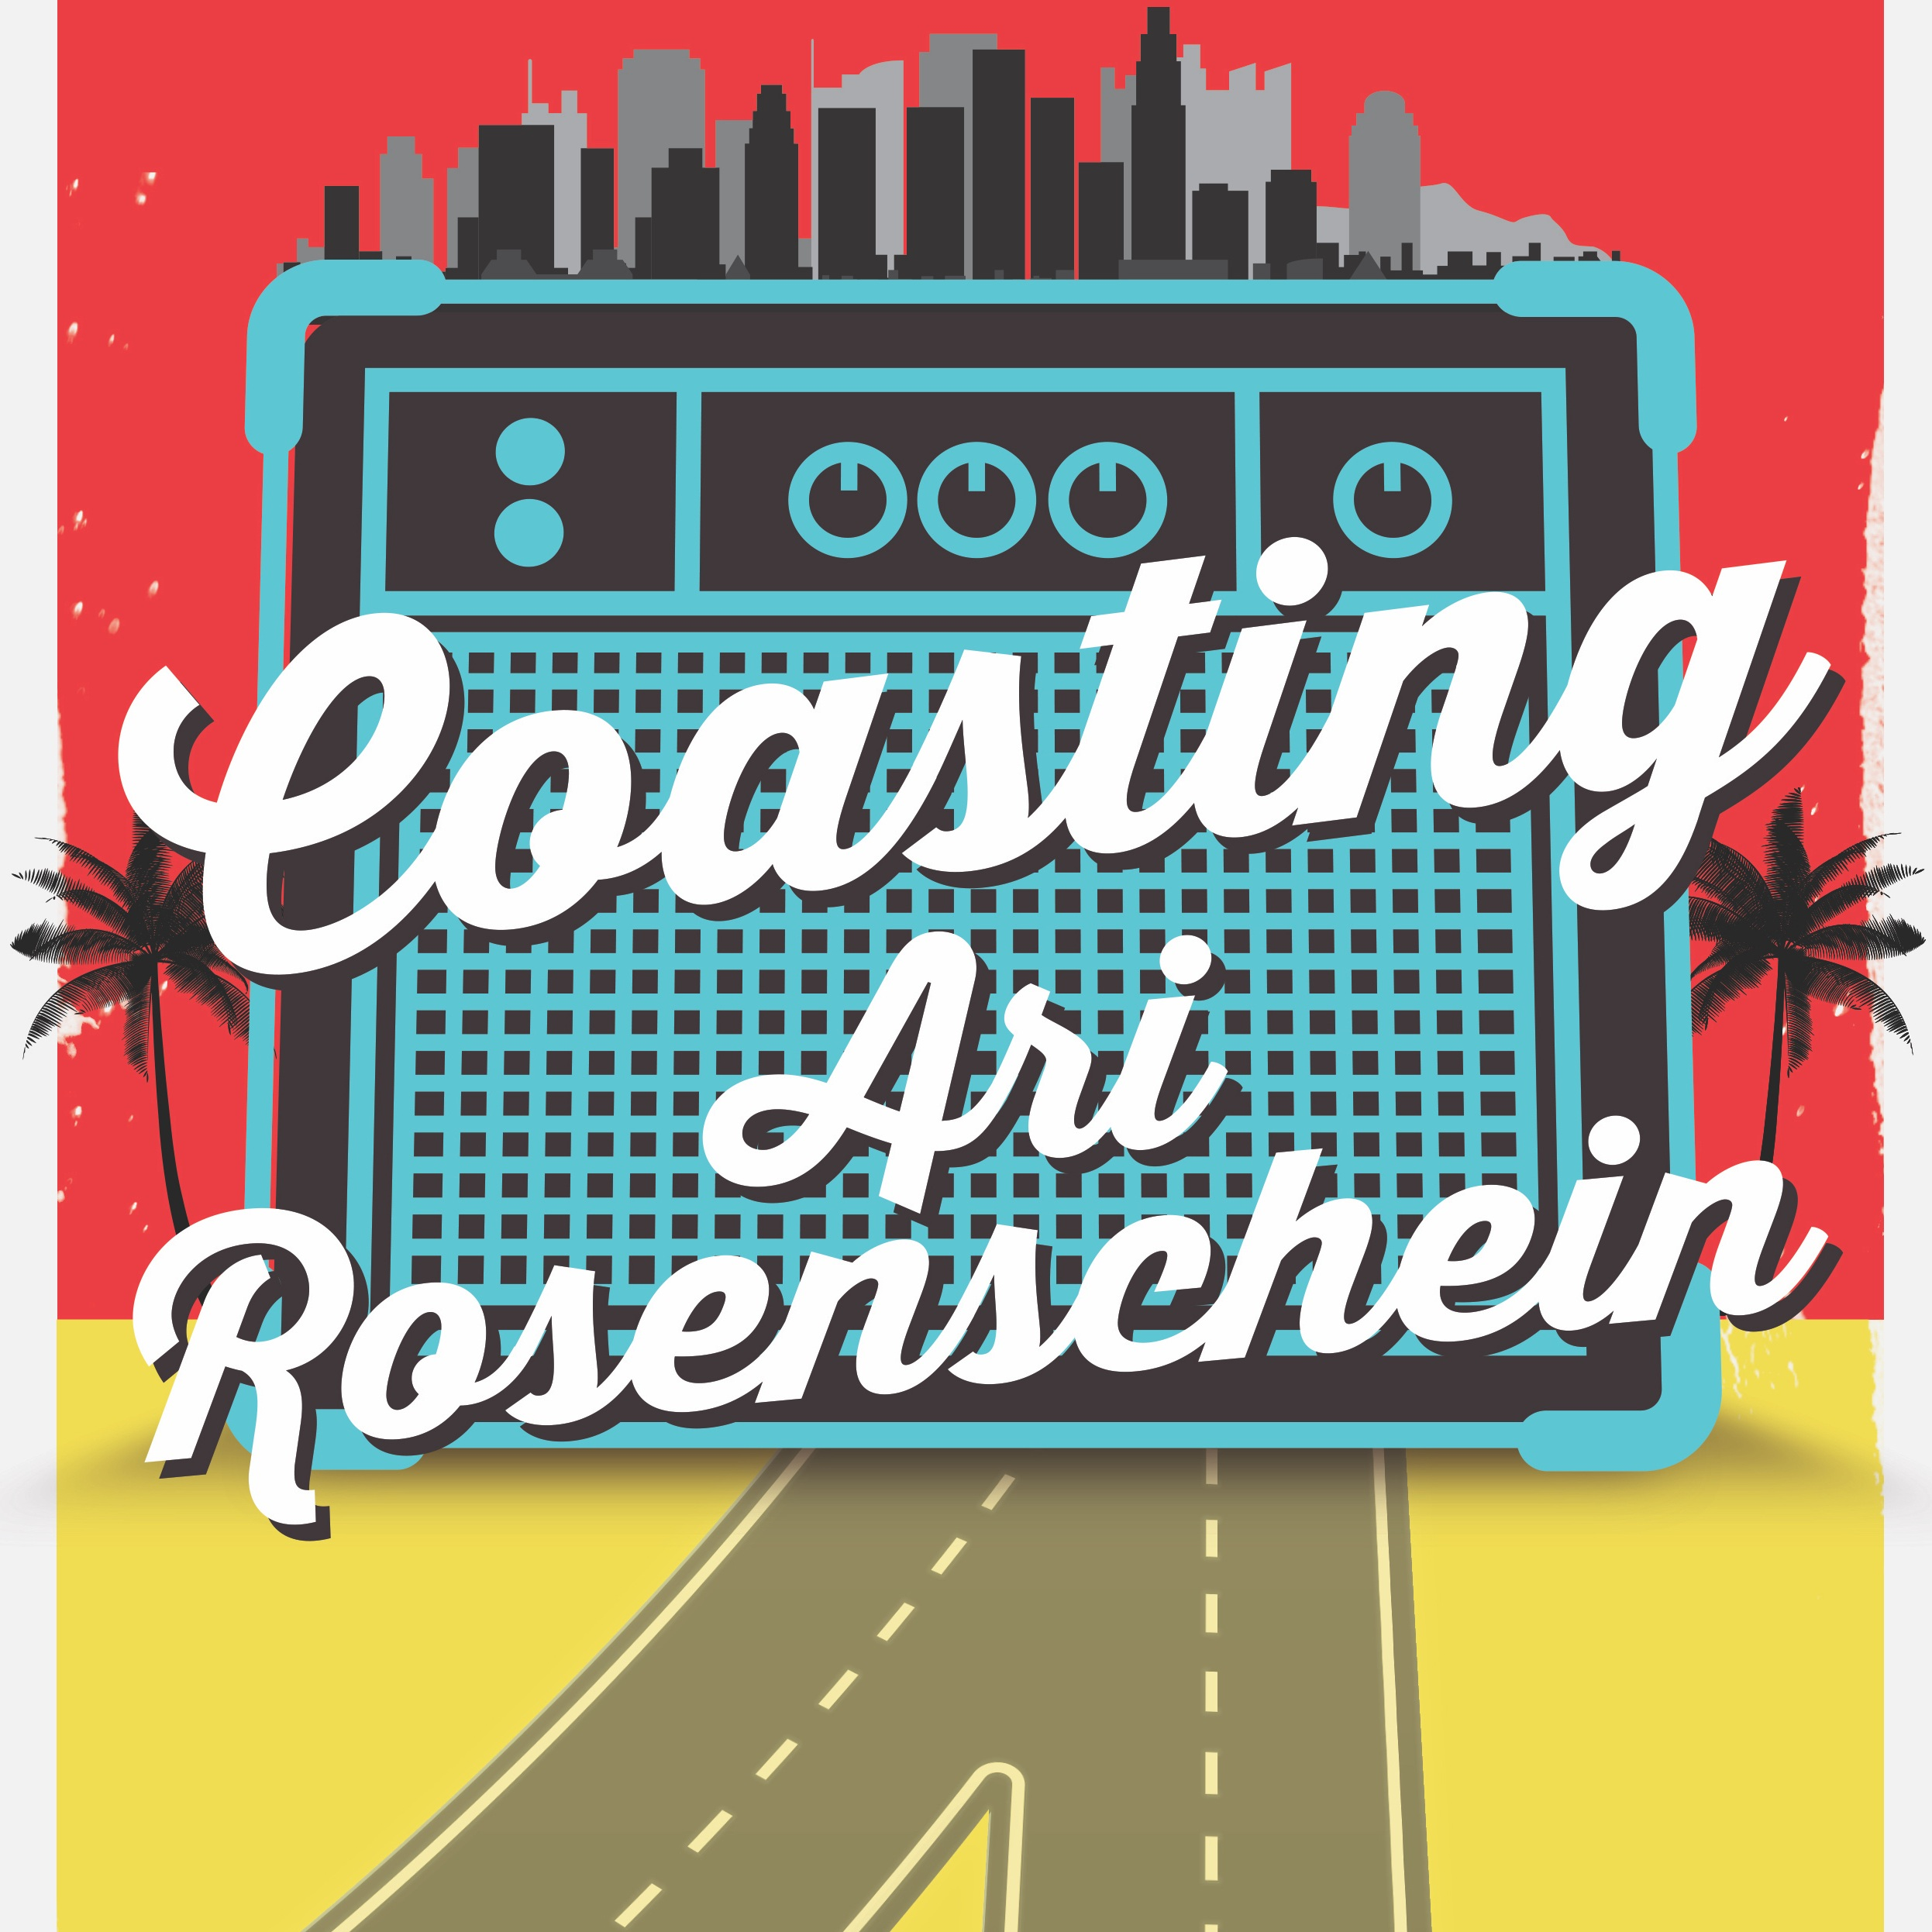 Coasting Ari Rosenchein  Short Story Collection Available Now:  Amazon  |  Barnes & Noble  |  Book Depository